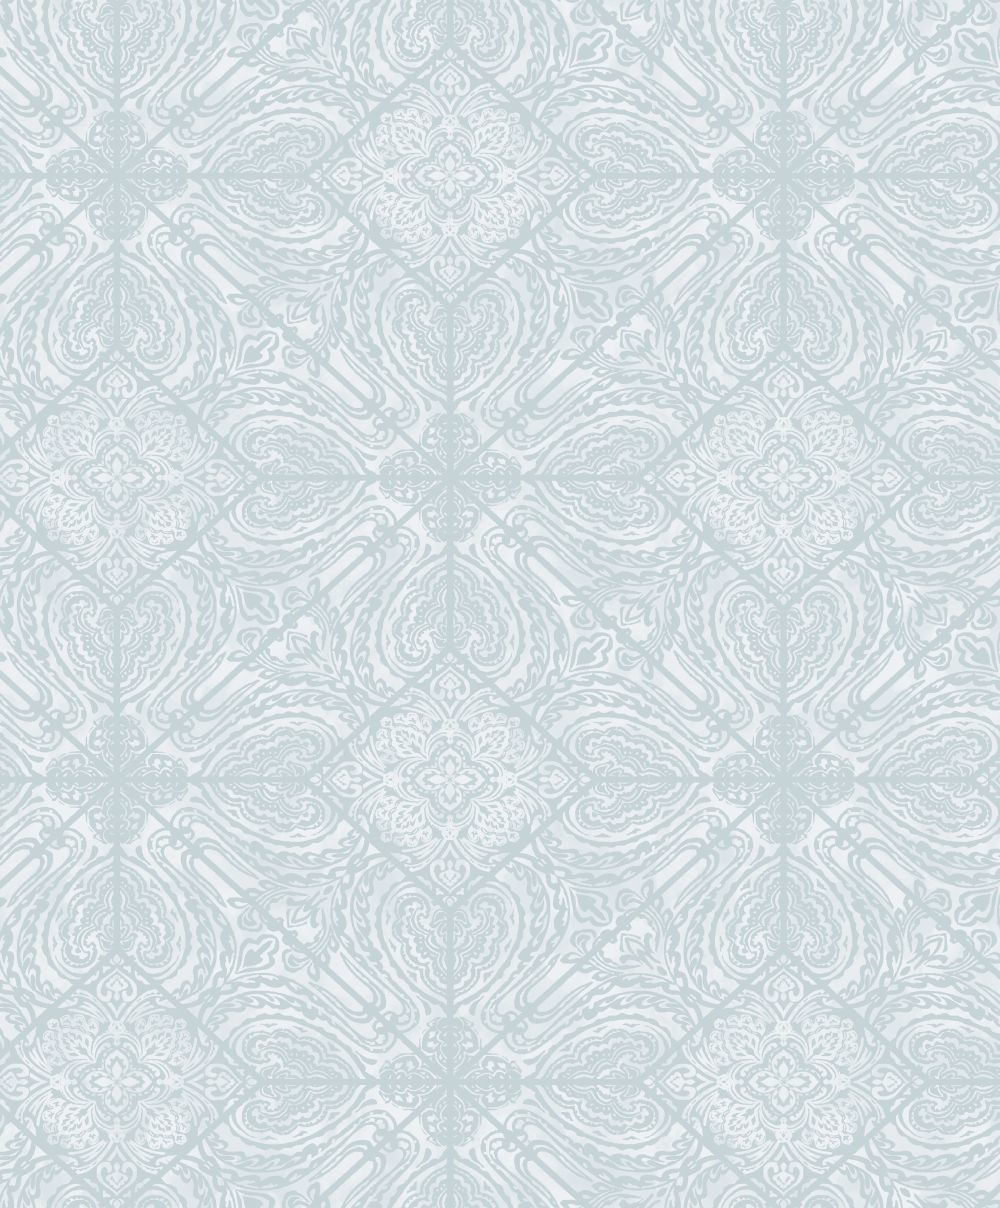 Albany Conistone Teal Wallpaper - Product code: 90851